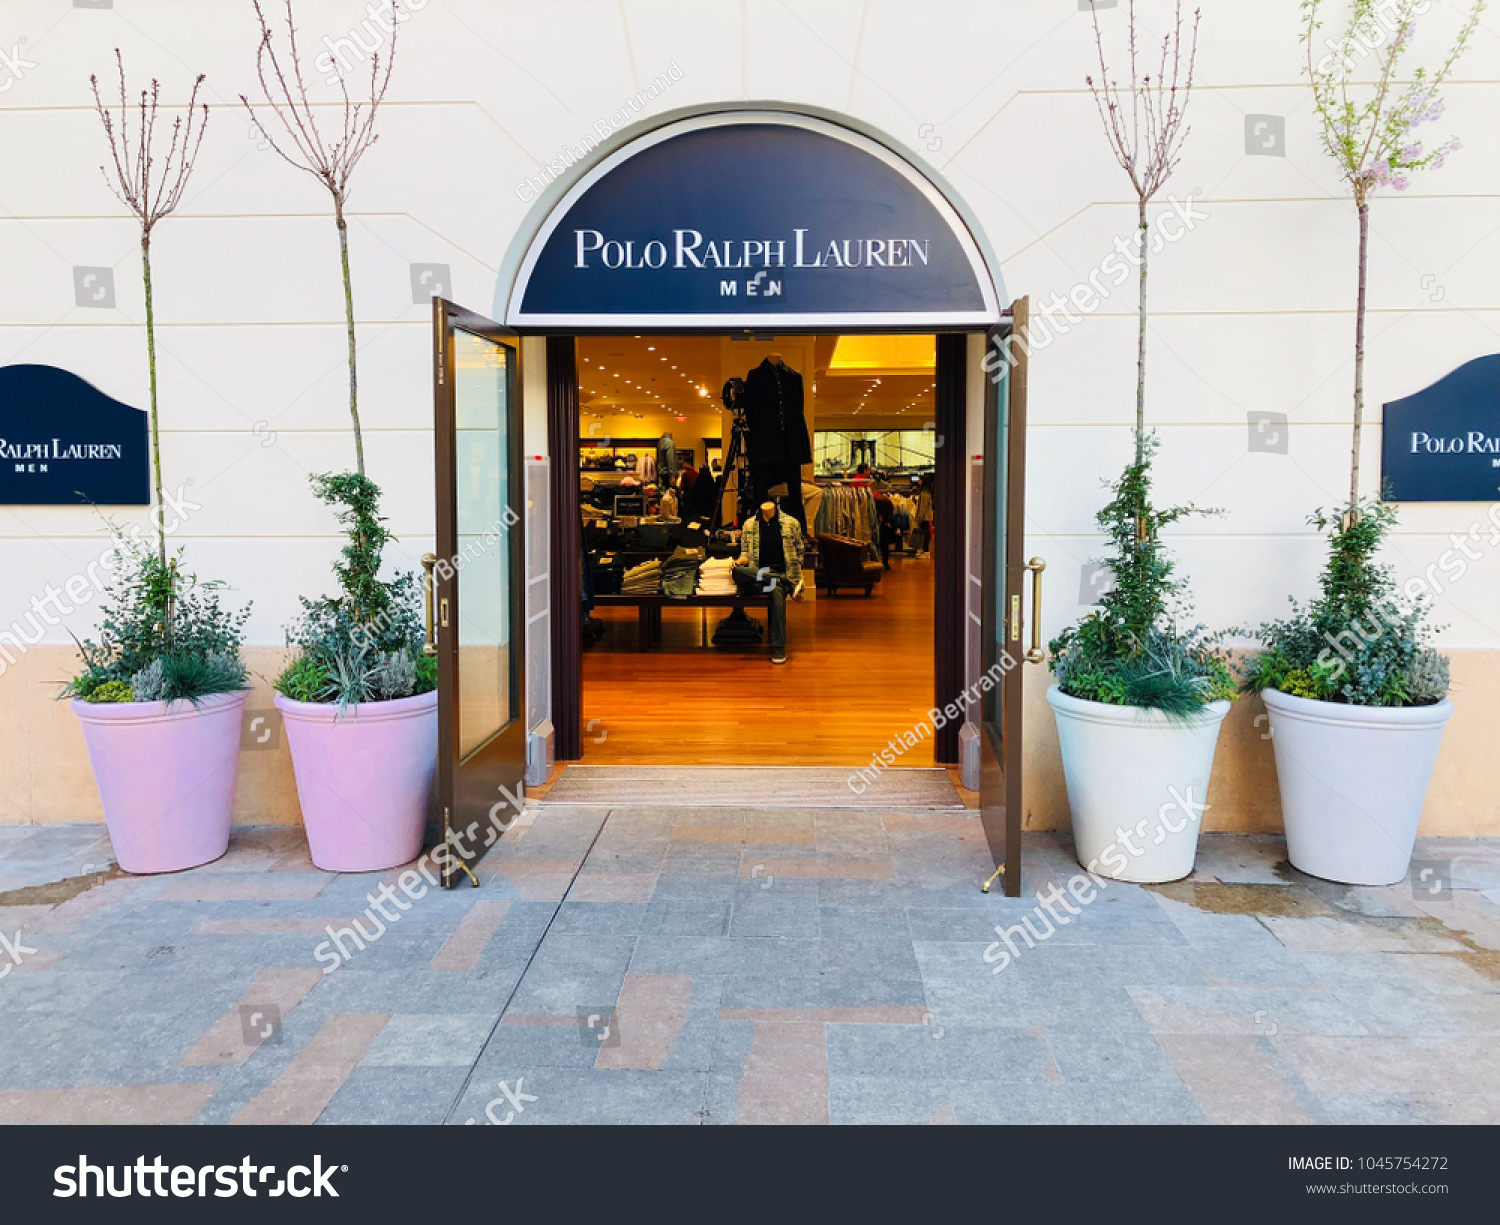 7023f115a2 Barcelona Mar 13 Polo Ralph Lauren Stock Photo (Edit Now) 1045754272